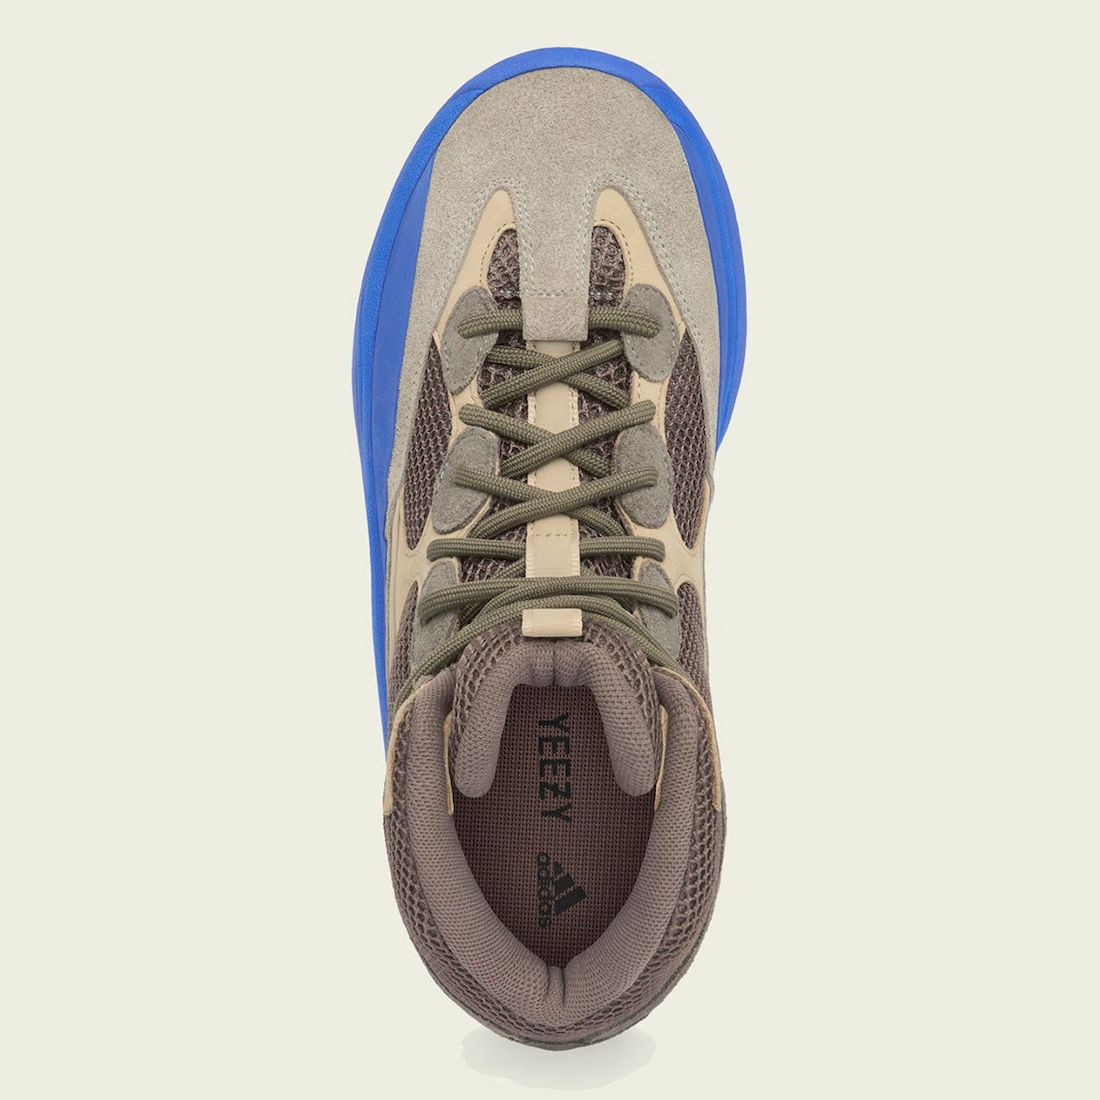 adidas Yeezy Desert Boot Taupe Blue Release Date